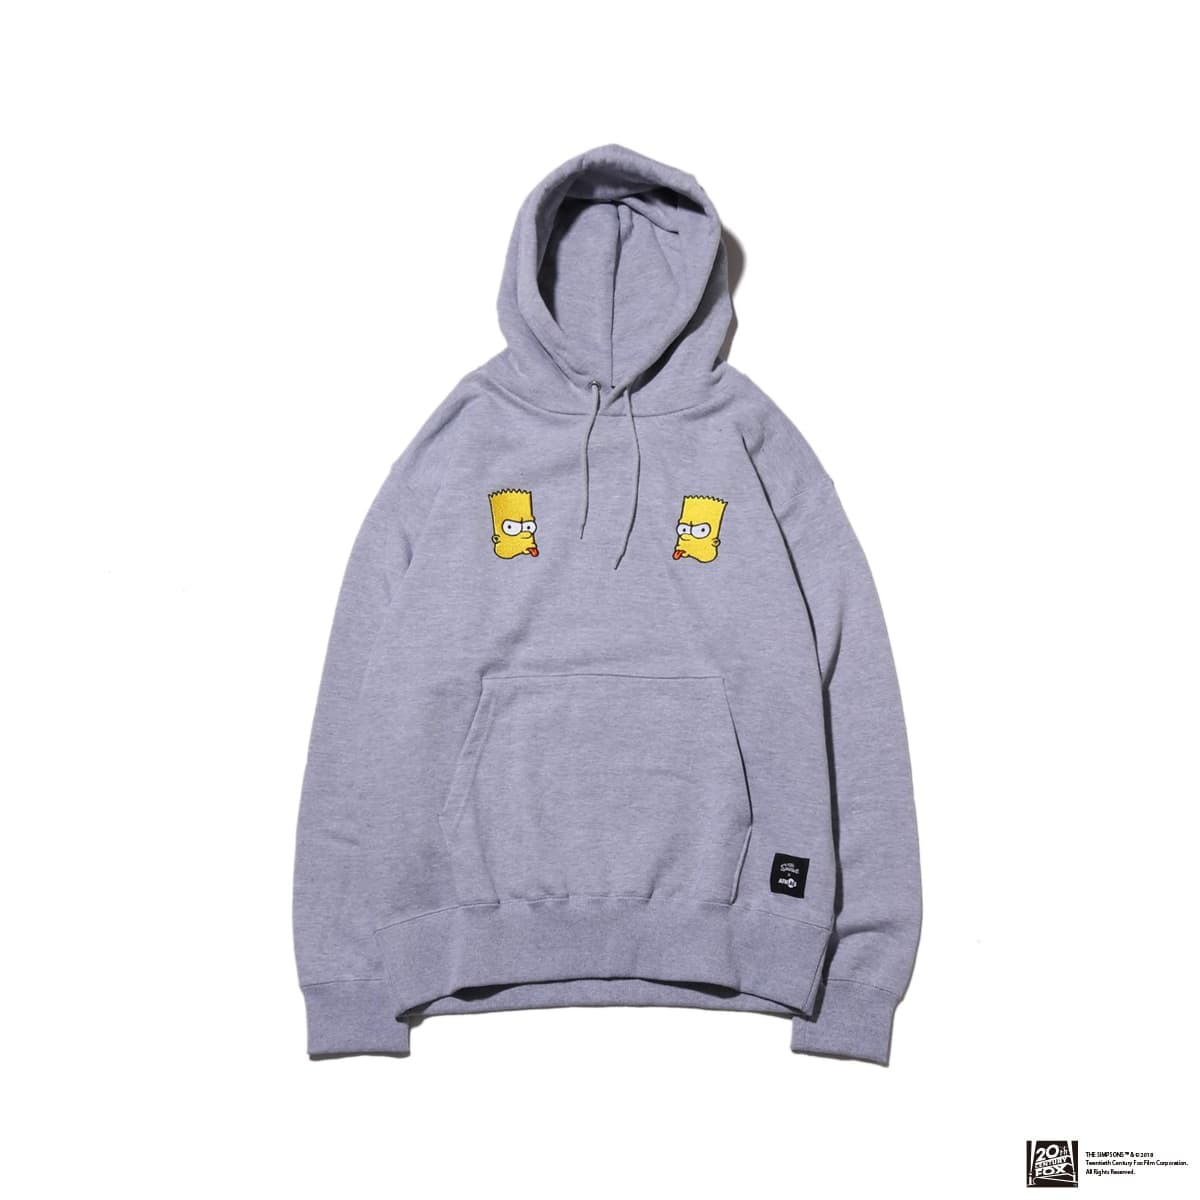 THE SIMPSONS x ATMOS LAB BART EMBROIDERY HOODIE  GRAY 18FW-I_photo_large